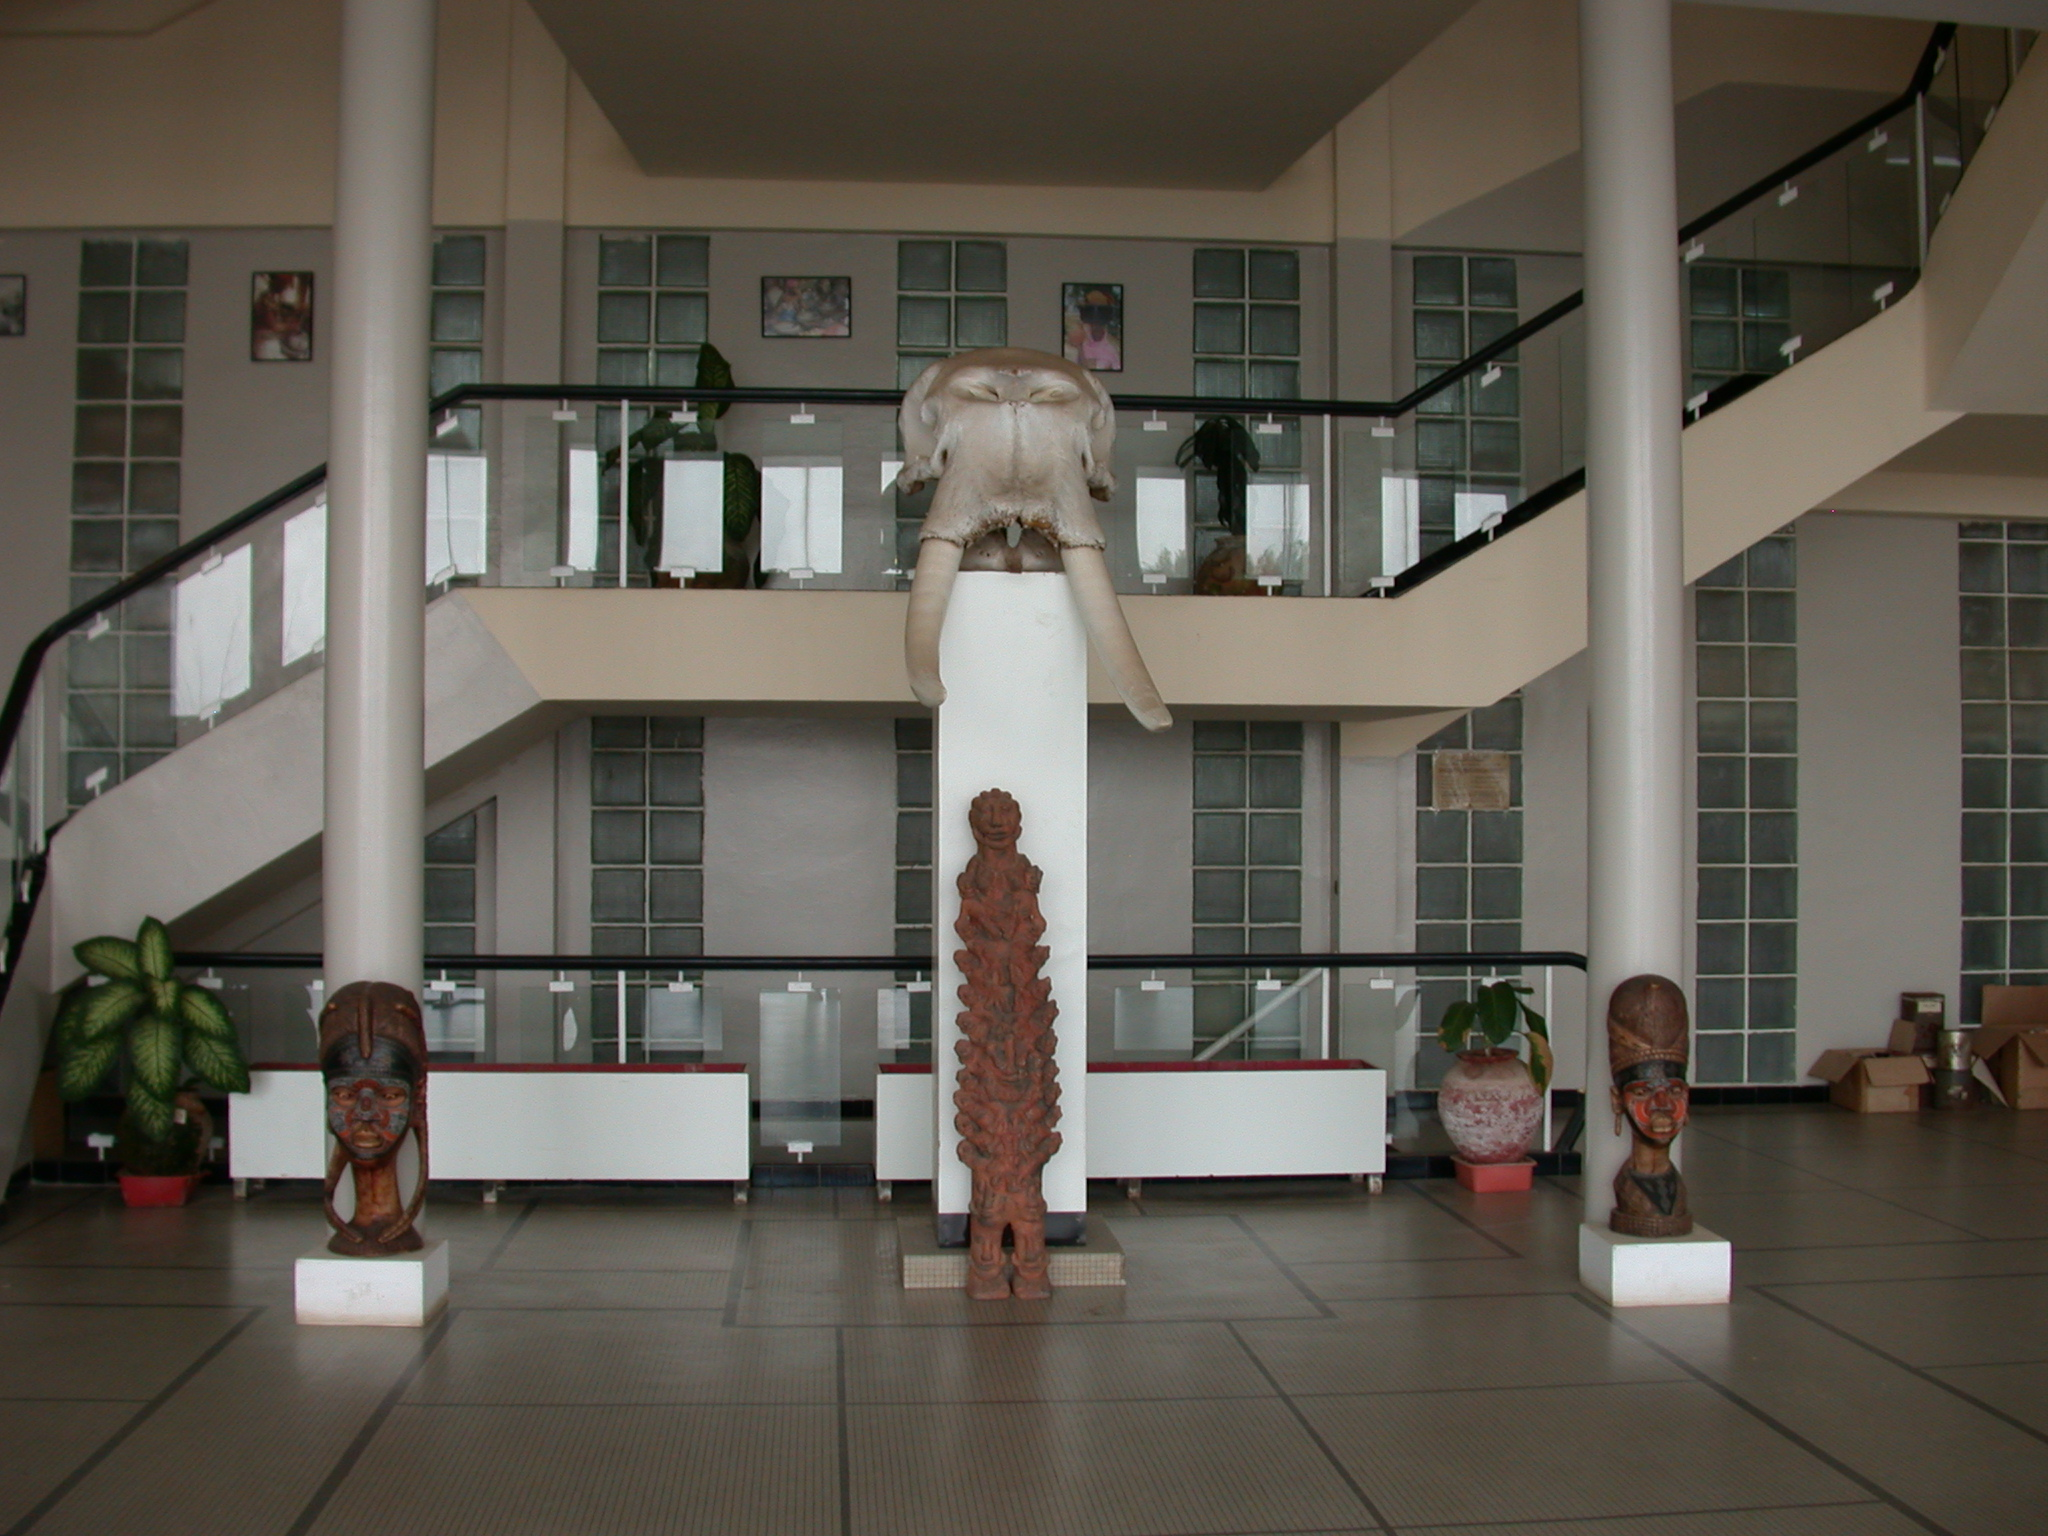 Entrance Hall of Institut Fondamental de l Afrique Noire, IFAN, Dakar, Senegal